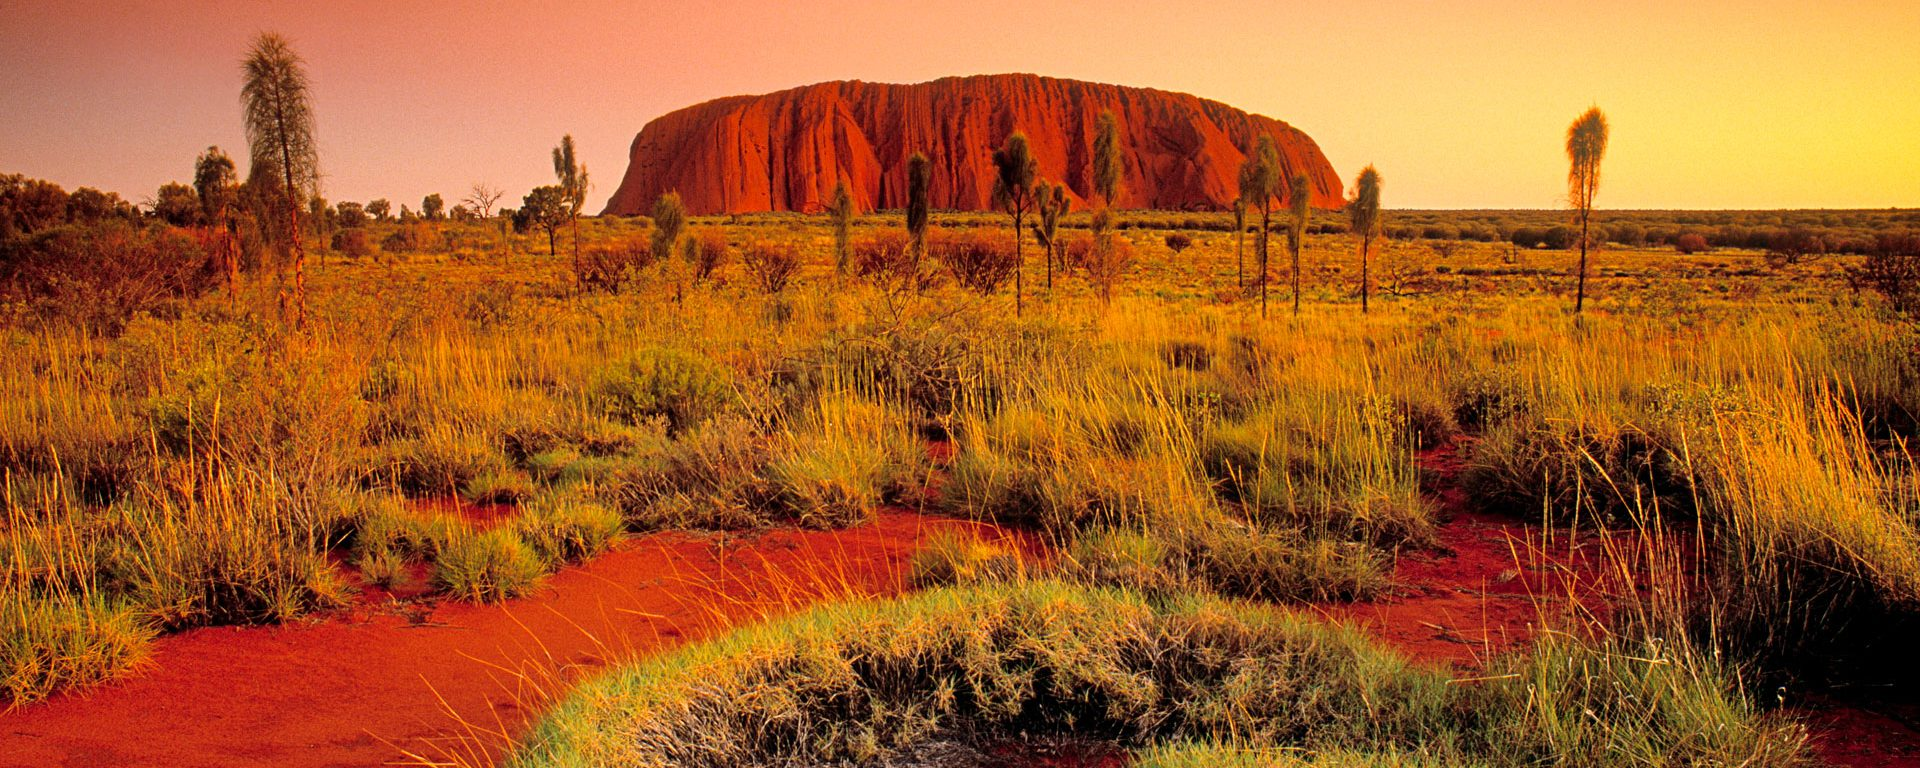 Ayers Rock in the Northern Territories, Australia